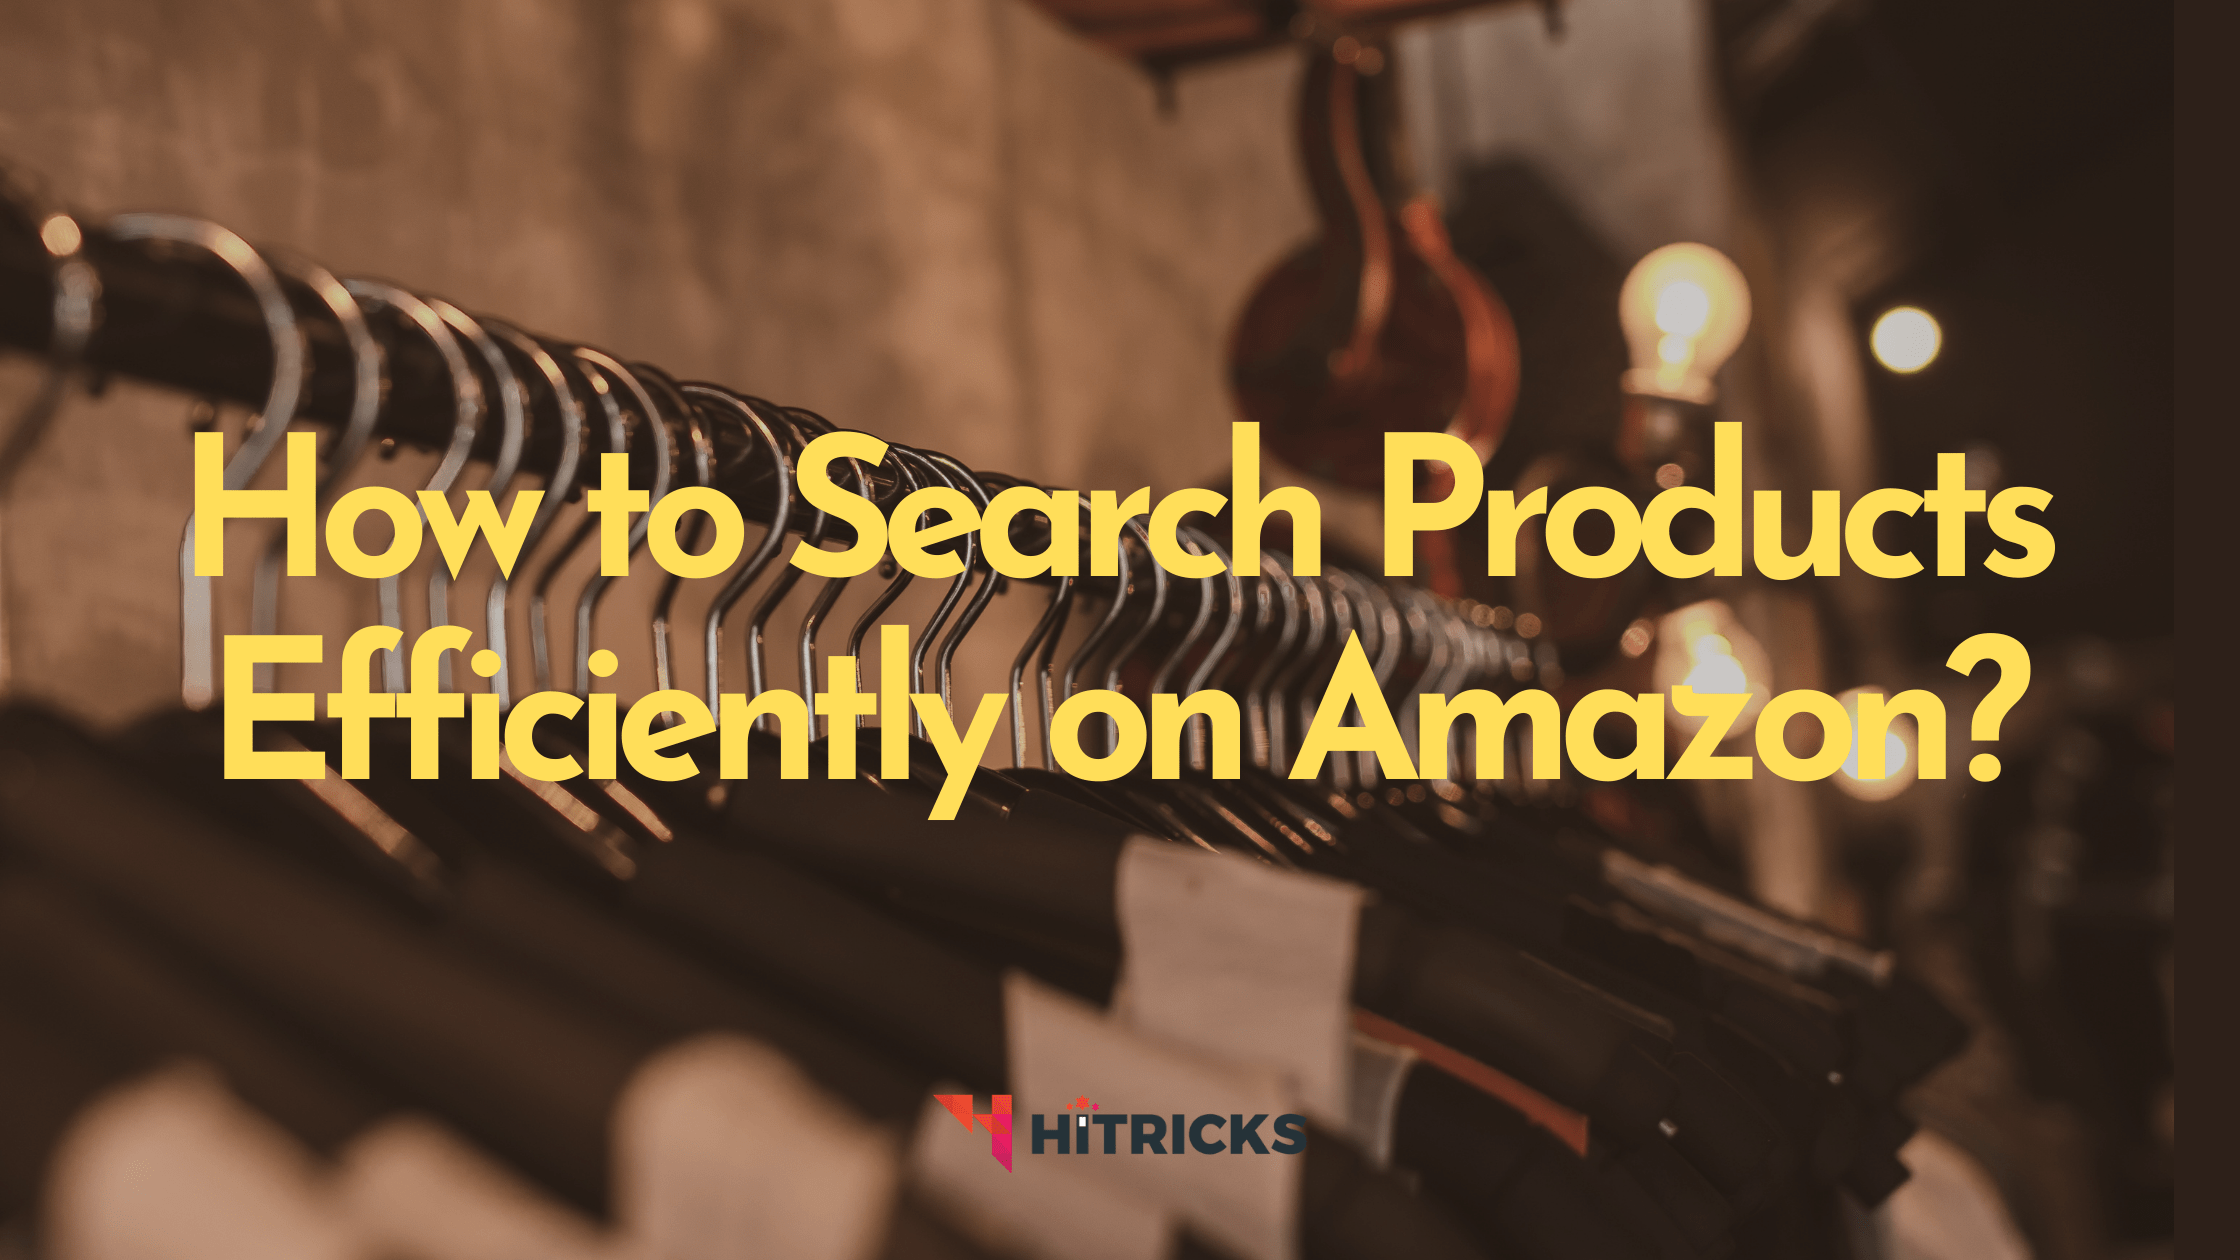 How to Search Products Efficiently on Amazon?